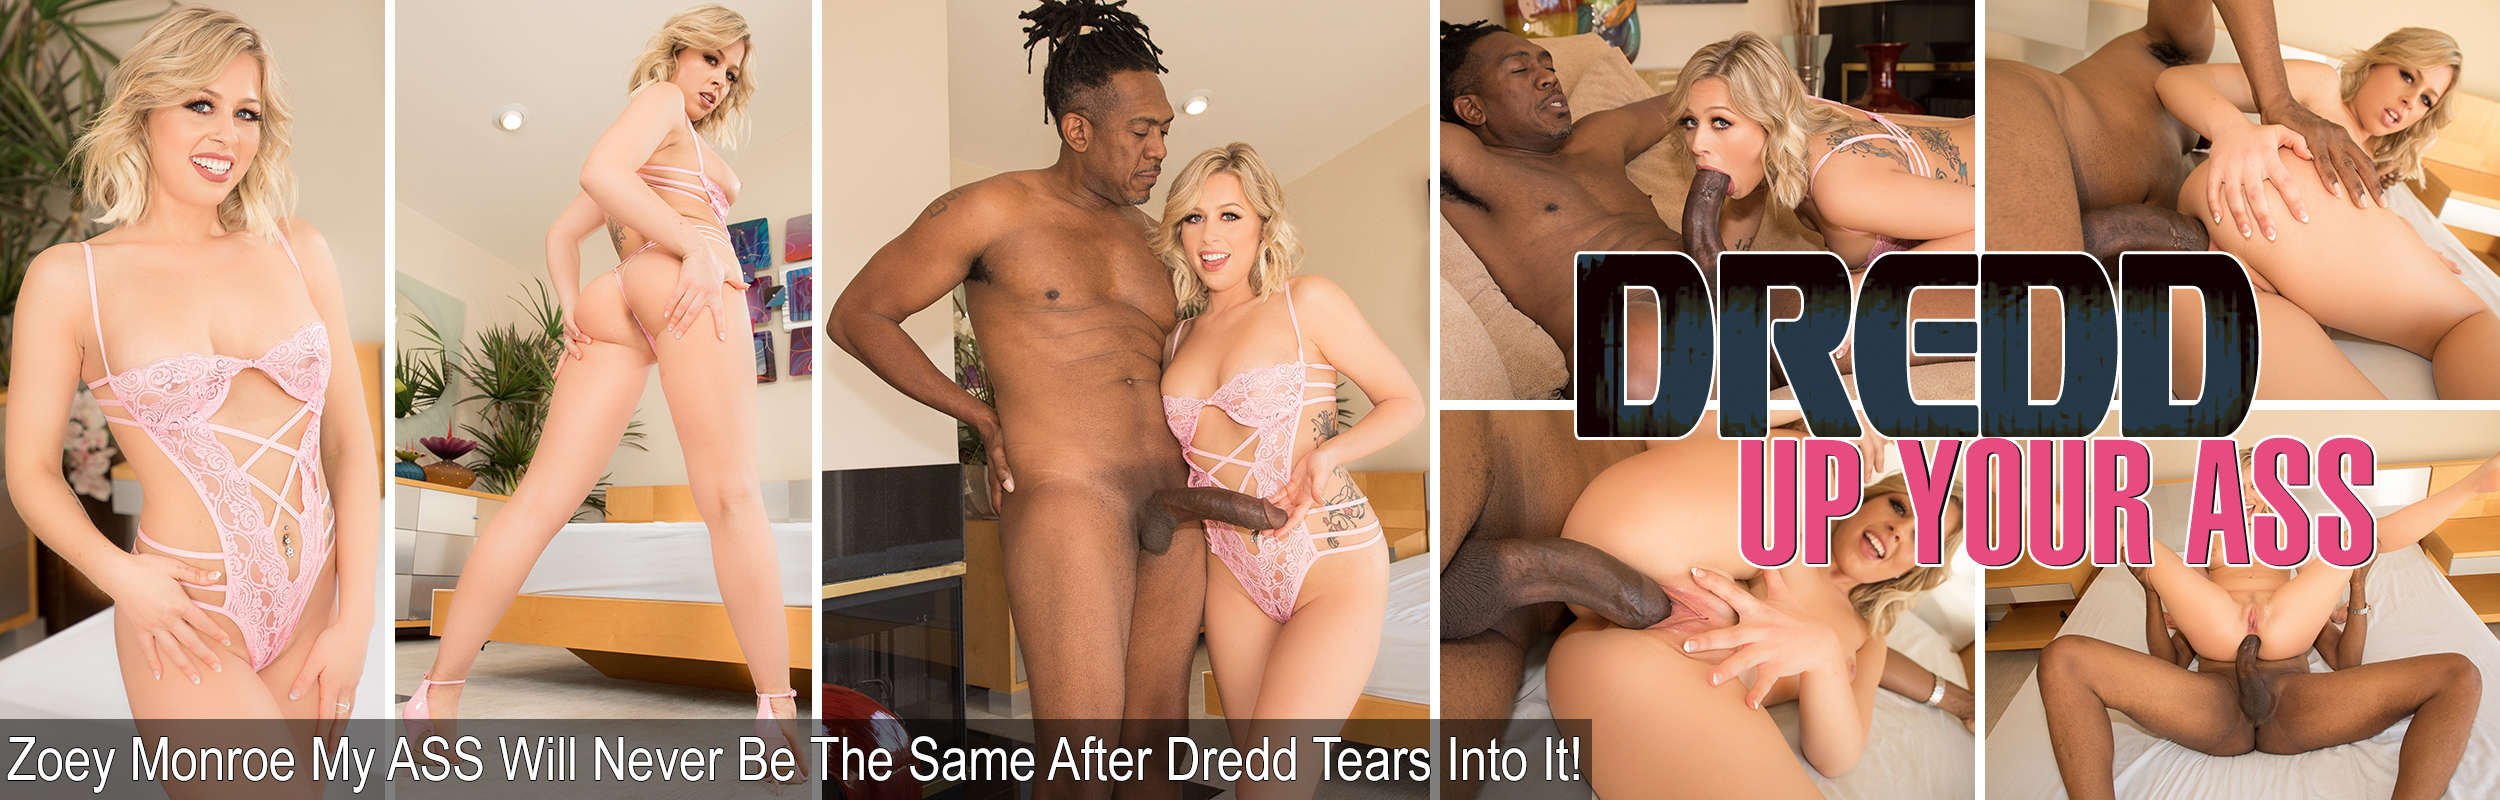 Zoey Monroe My ASS Will Never Be The Same After Dredd Tears Into It!